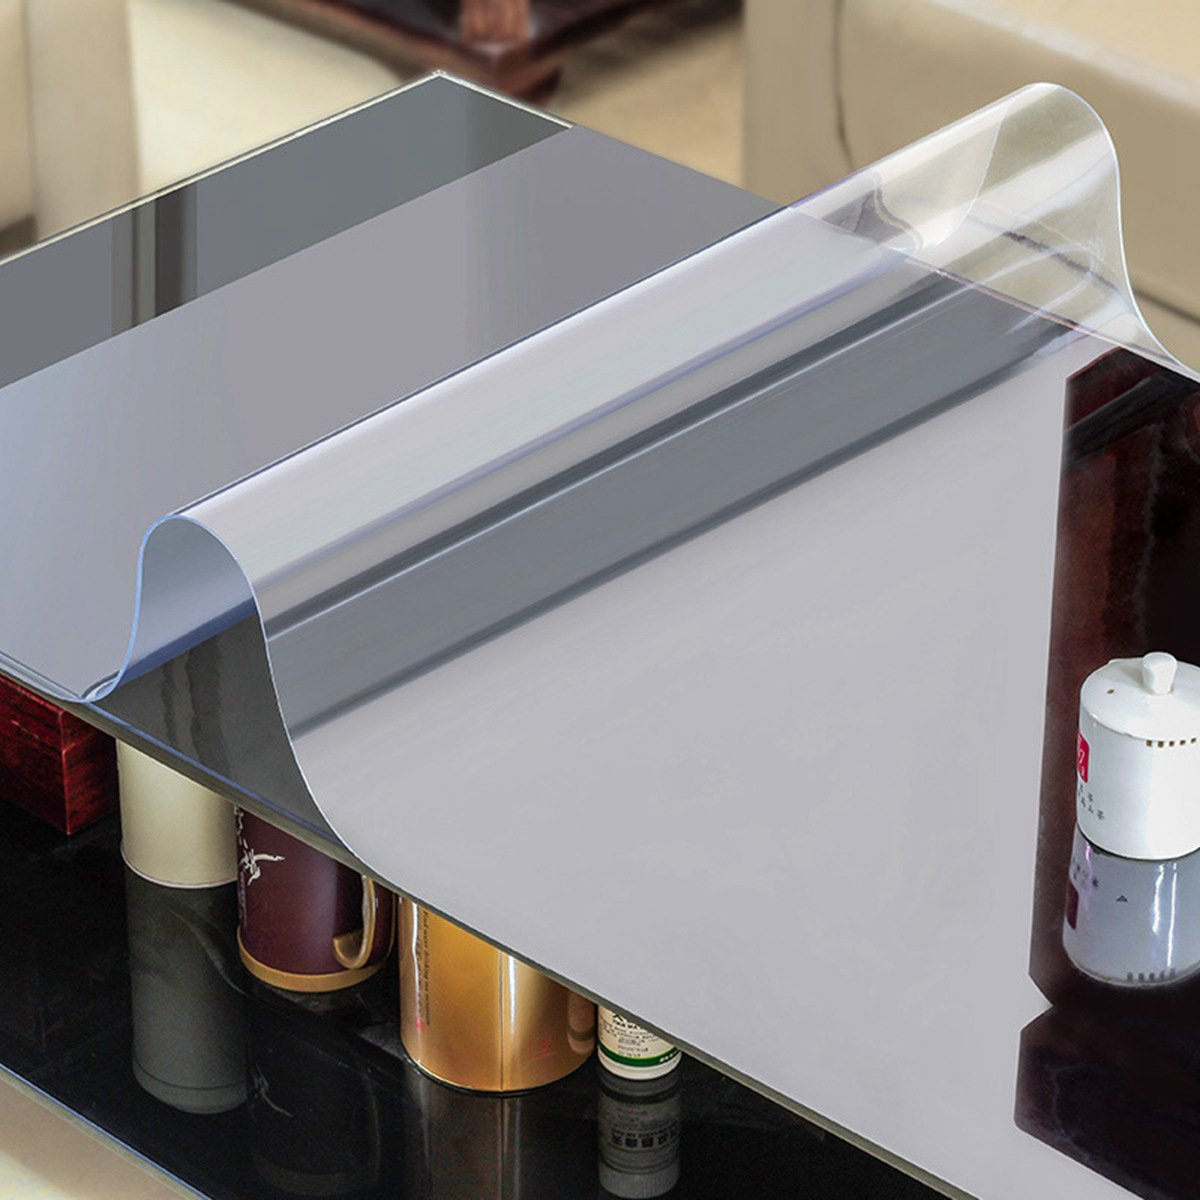 AiXiAng Custom 1.5mm Waterproof Clear PVC Table Cover Protector Rectangle 24 x 48 Inches Plastic Tablecloth for Dining Table, Desk,Lab Bench,Marble Top Table Pads Table Covers Coffe Table Protector